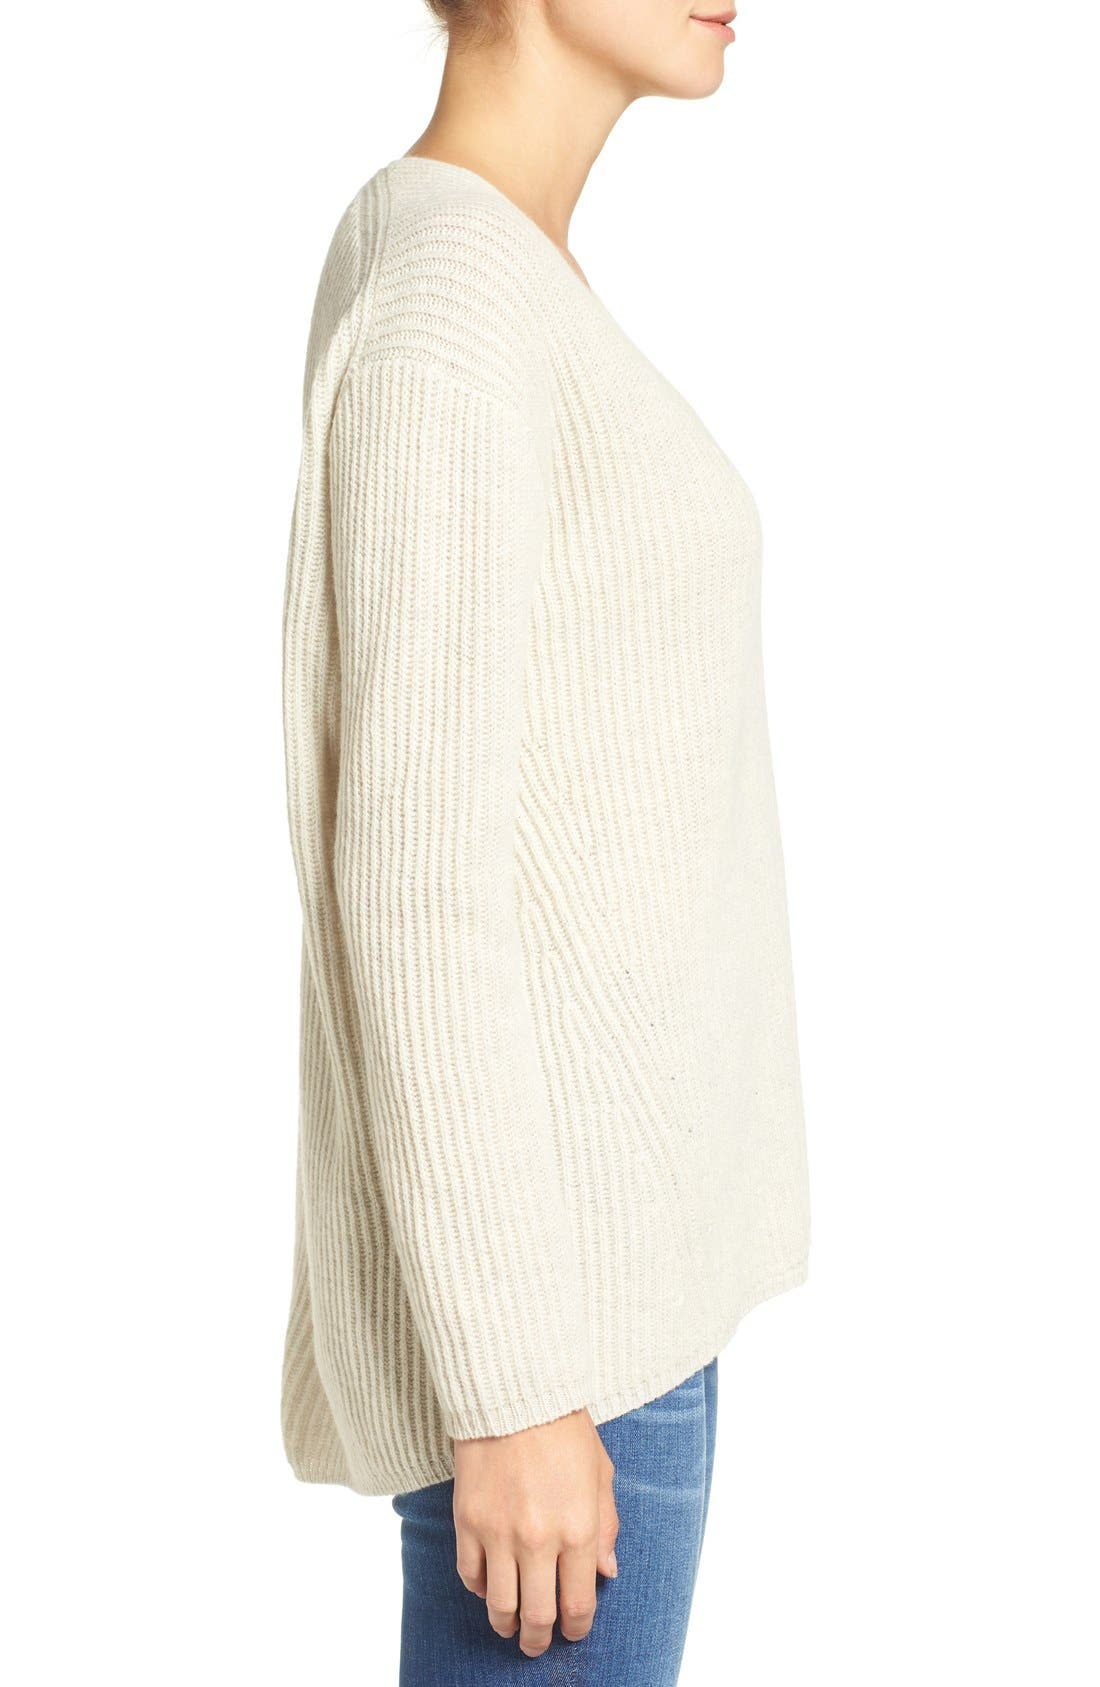 Woodside Pullover Sweater,                             Alternate thumbnail 25, color,